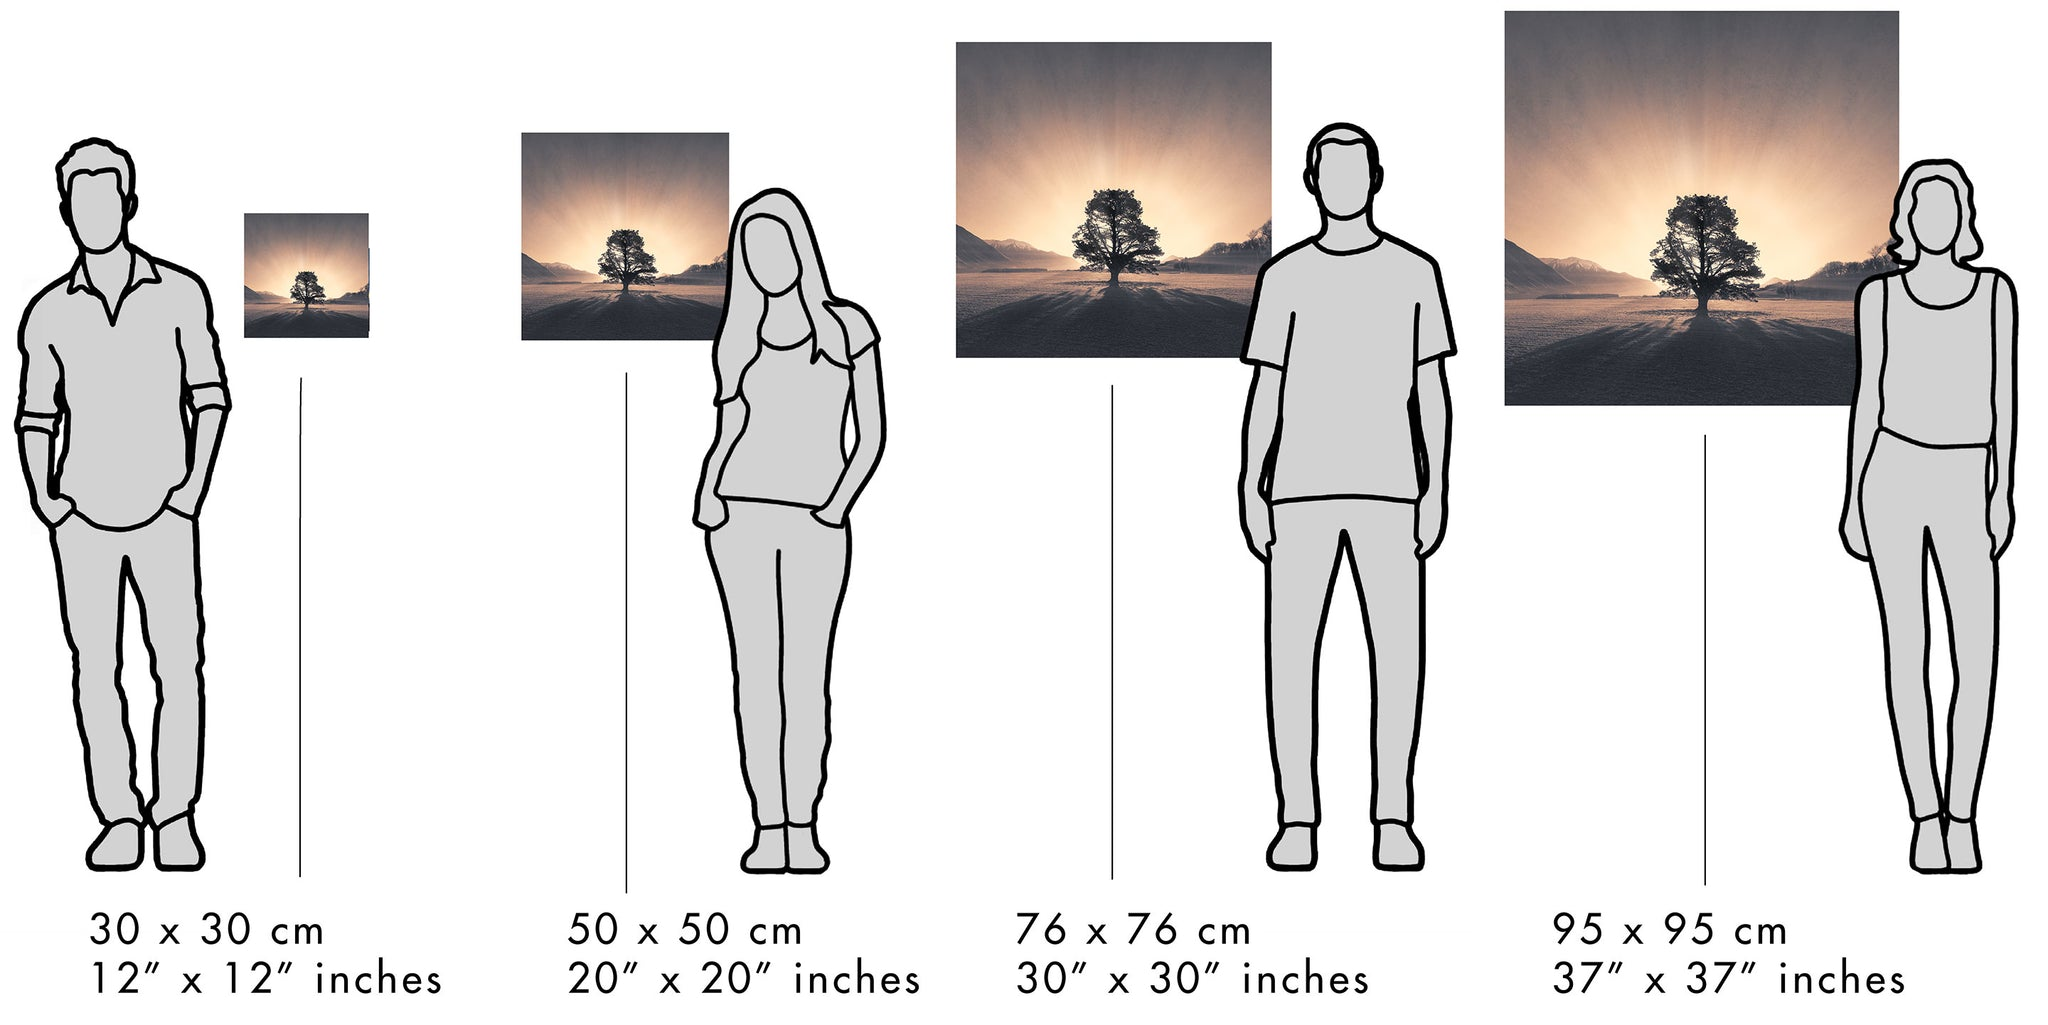 Visual size guide to compare the print or canvas sizes to people